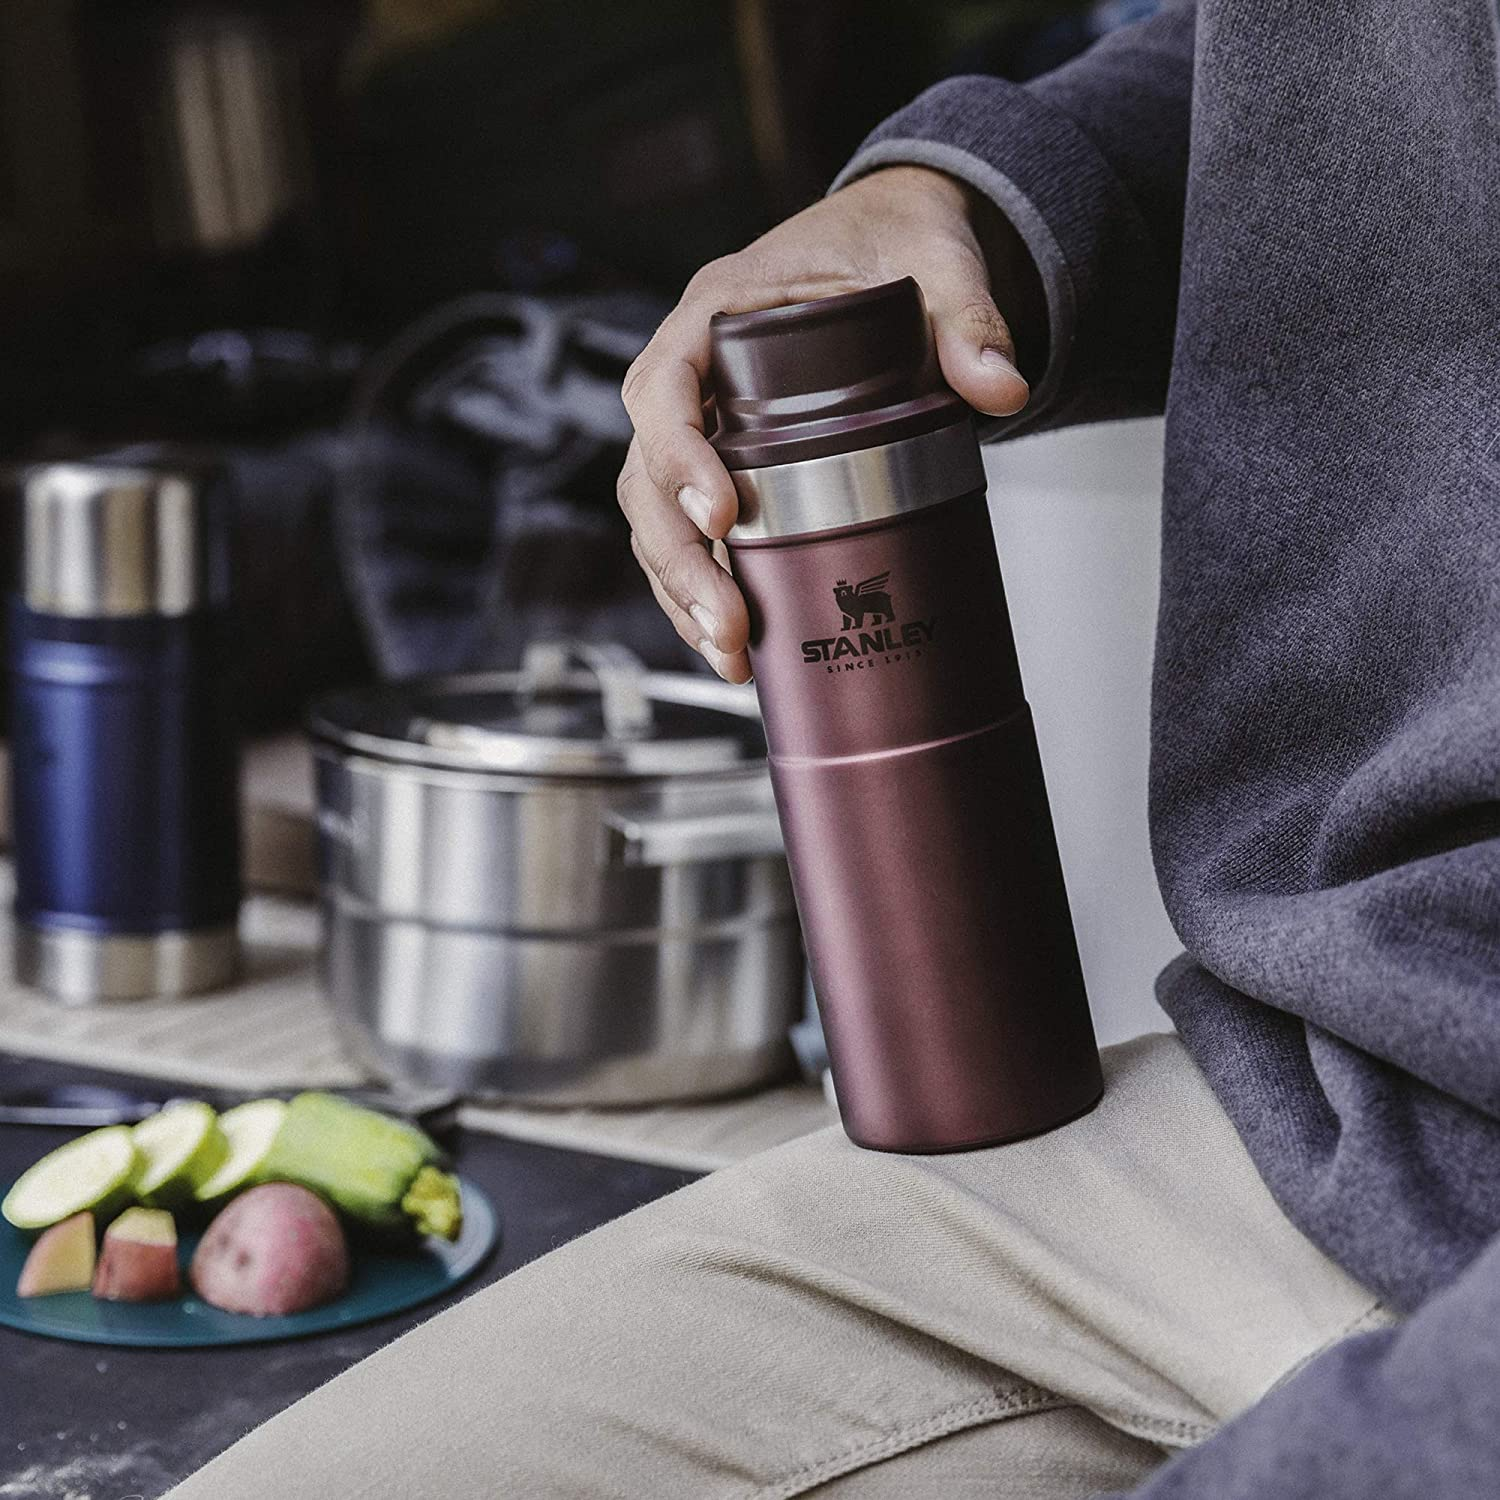 Camping & Hiking Stanley Classic Trigger Action Travel Mug 16 oz 0.47L WINE  RED Water Bottles & Hydration